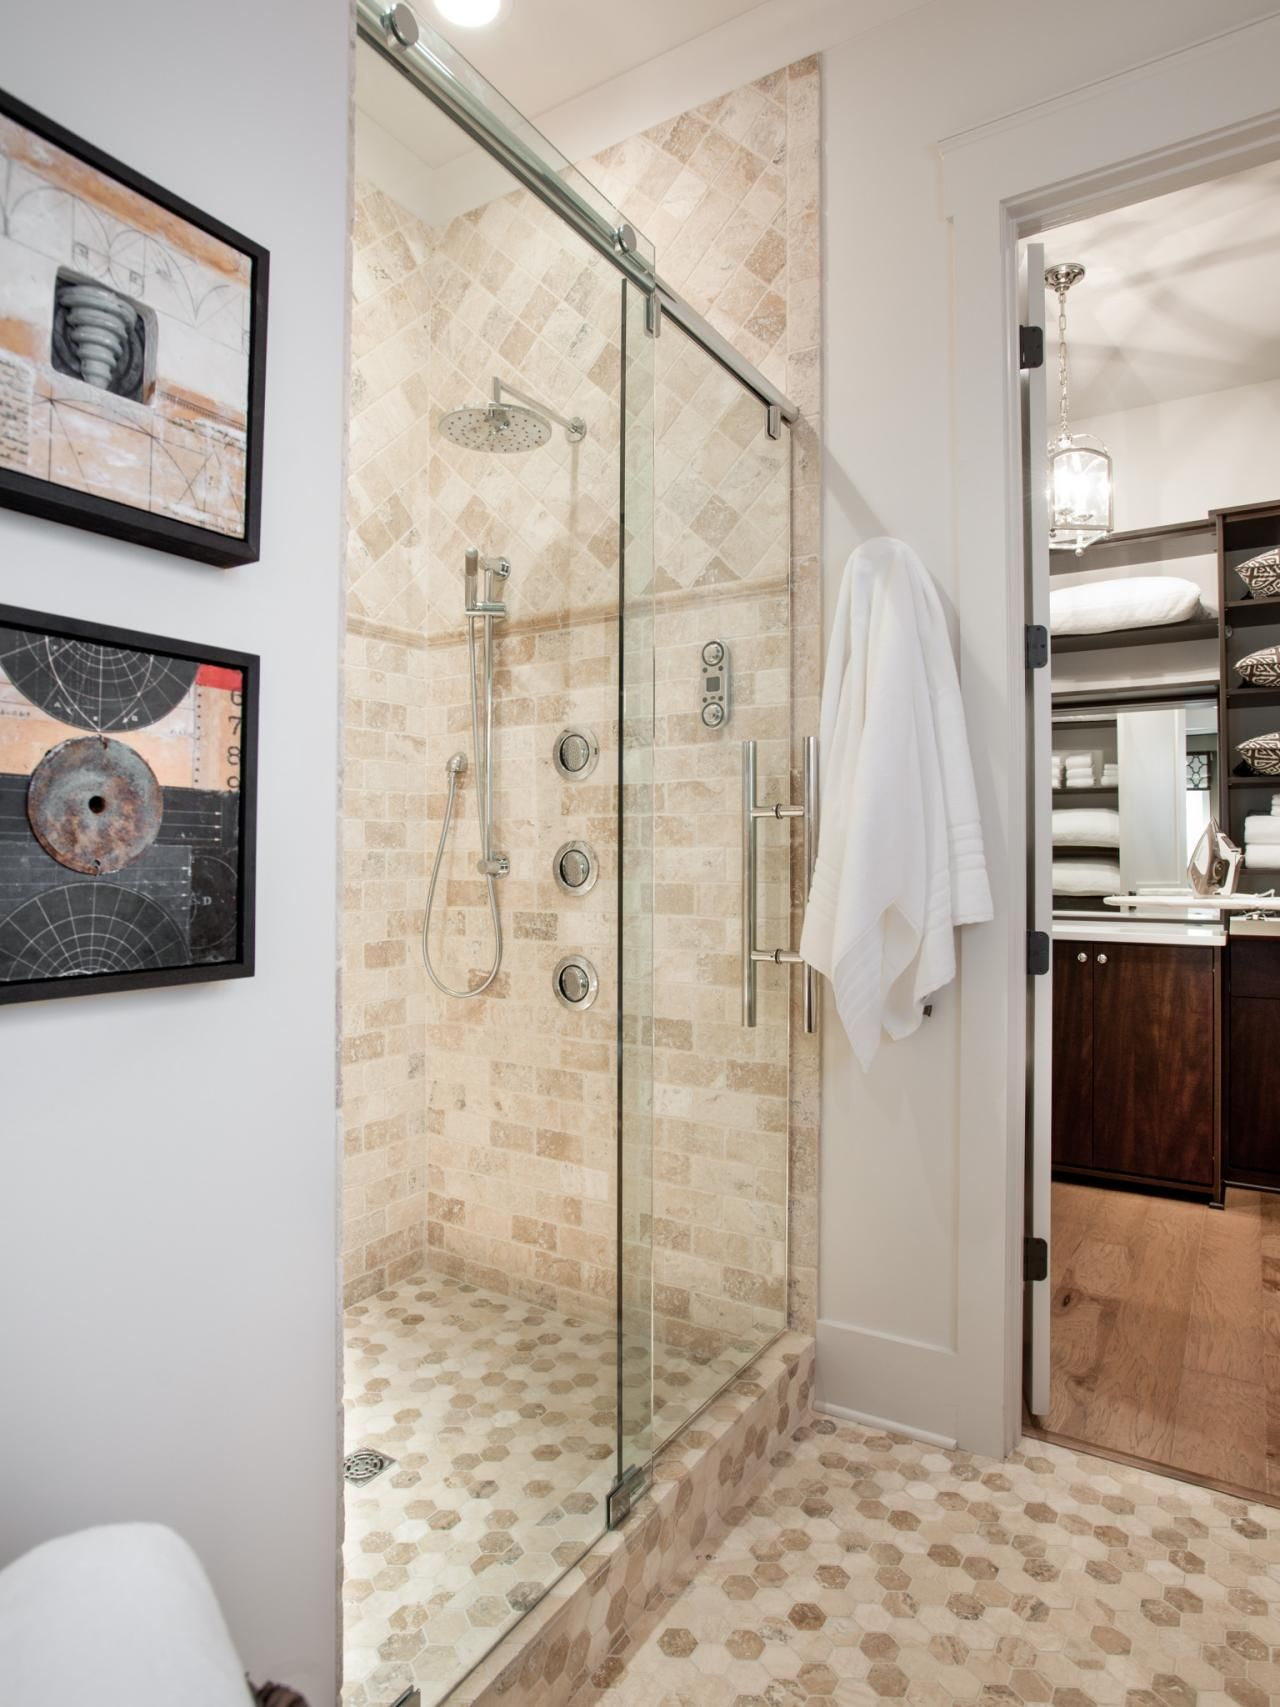 Browse Through Luxurious Master Bathroom Photos From Hgtv Smart Home And Vote For The Space You Love The Most From The Experts A Master Bathroom Shower Master Bathroom Bathroom Pictures